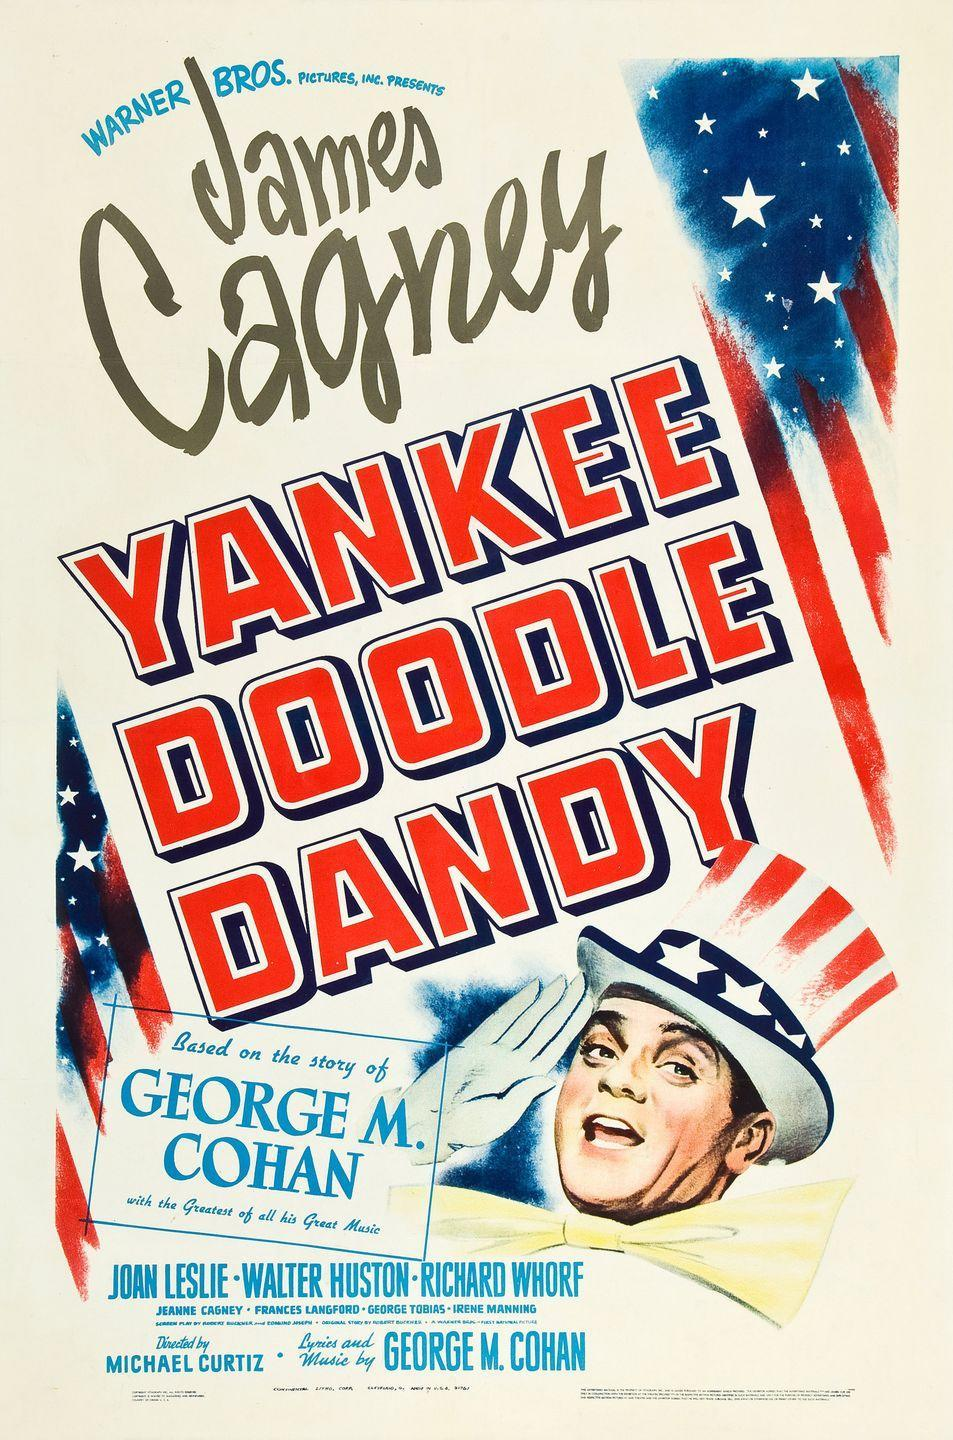 """<p>In case the movie poster didn't tip you off, this is a patriotic movie that's perfect for the 4th of July. <em>Yankee Doodle Dandy </em>is about the exciting life of George M. Cohan, a musical composer, playwright, actor, and dancer. <br><br> <a class=""""link rapid-noclick-resp"""" href=""""https://www.amazon.com/Yankee-Doodle-Dandy-James-Cagney/dp/B003X94LH8/ref=sr_1_1?tag=syn-yahoo-20&ascsubtag=%5Bartid%7C10070.g.36156094%5Bsrc%7Cyahoo-us"""" rel=""""nofollow noopener"""" target=""""_blank"""" data-ylk=""""slk:STREAM NOW"""">STREAM NOW</a></p>"""